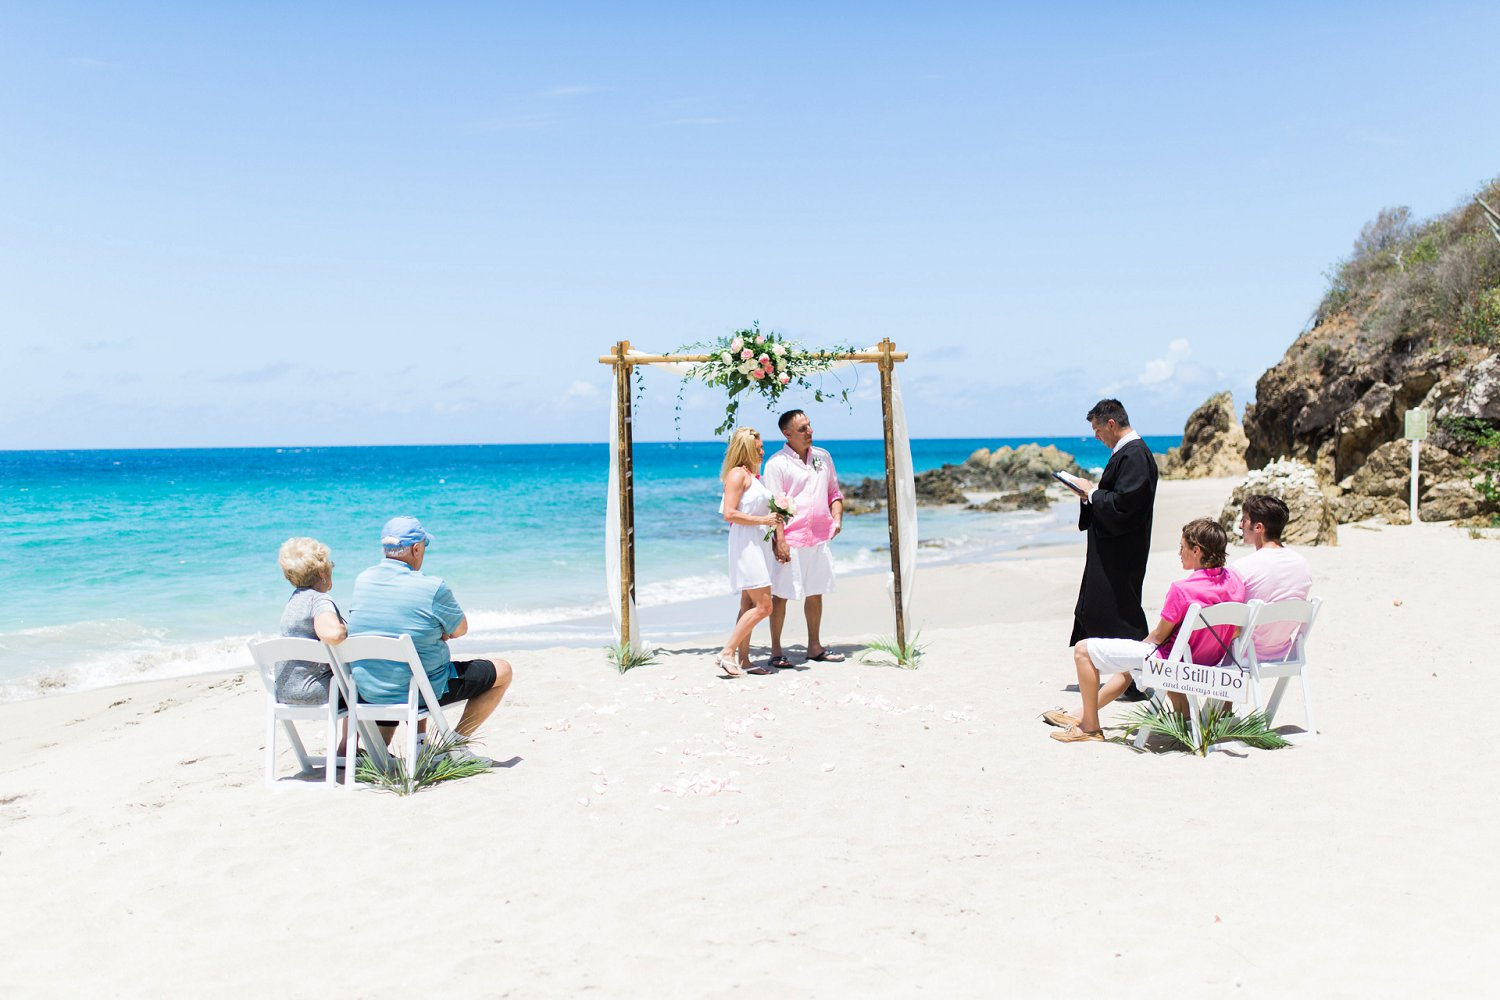 Vow renewal ceremony at Limetree beach with Wedding Minister Island Mike, stthomasweddingofficiant.com